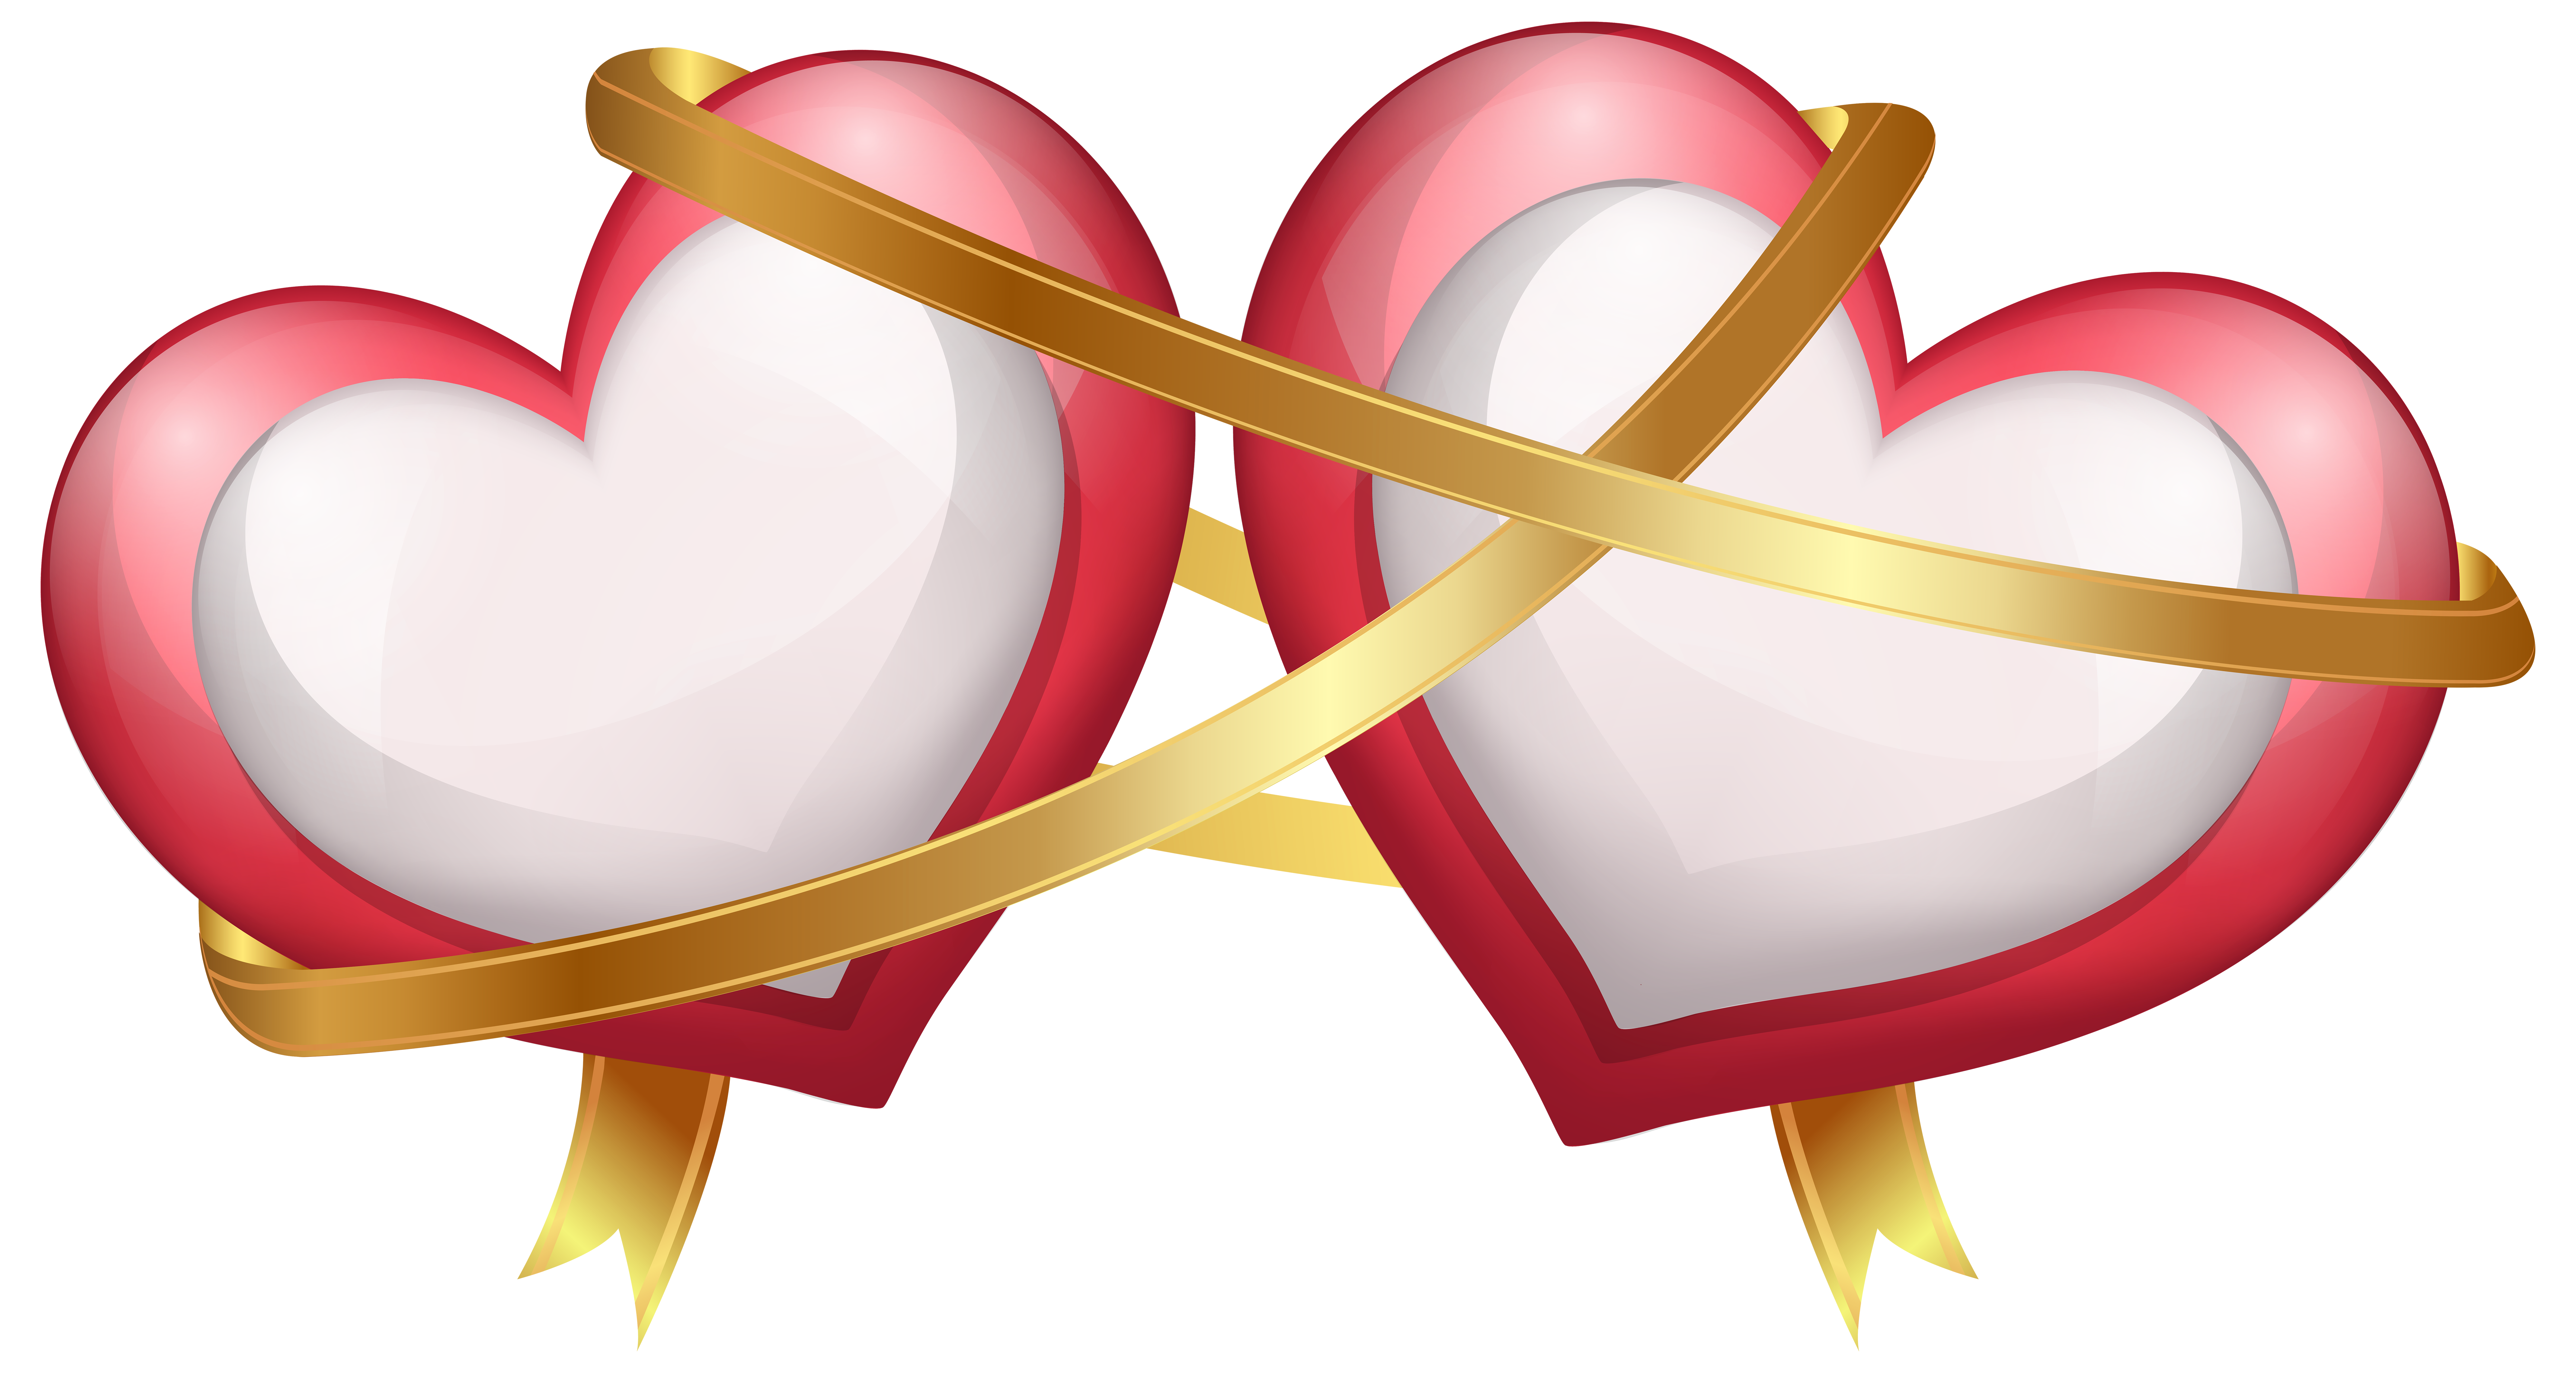 Wedding two heart clipart graphic royalty free stock Wedding invitation Valentine's Day Heart Clip art - Two Hearts with ... graphic royalty free stock